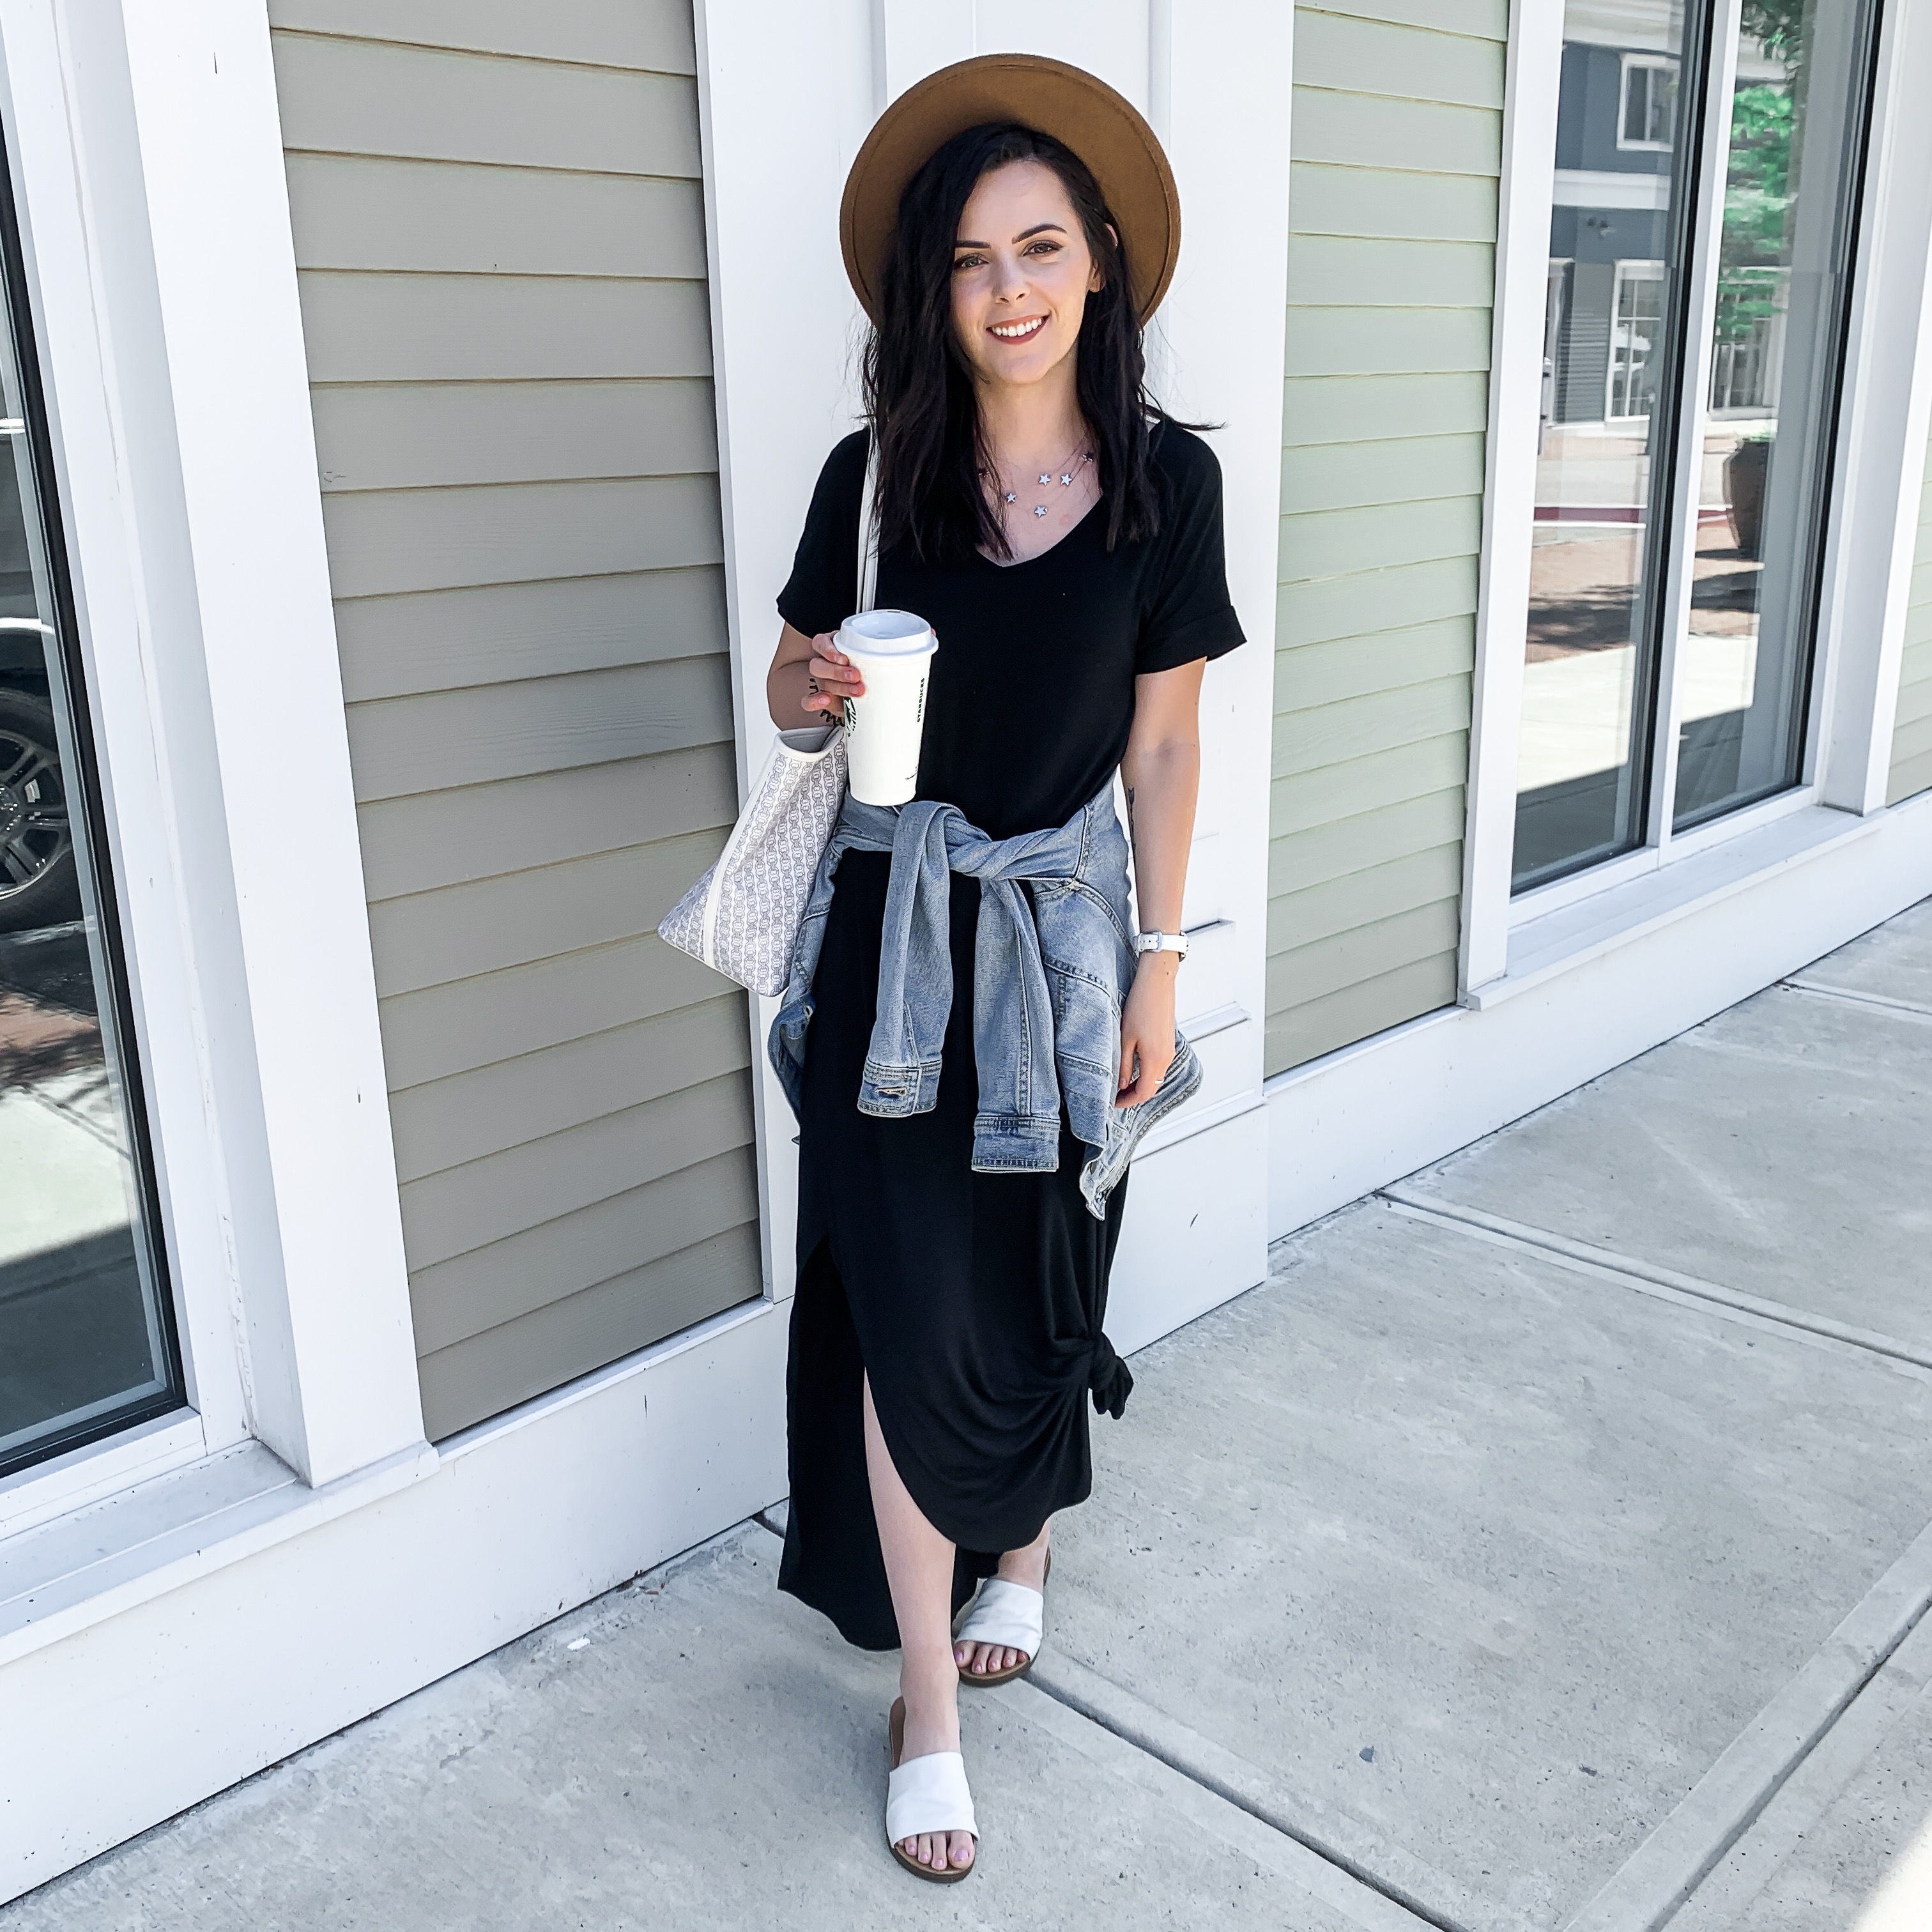 3 Must Have Travel Outfits for Summer